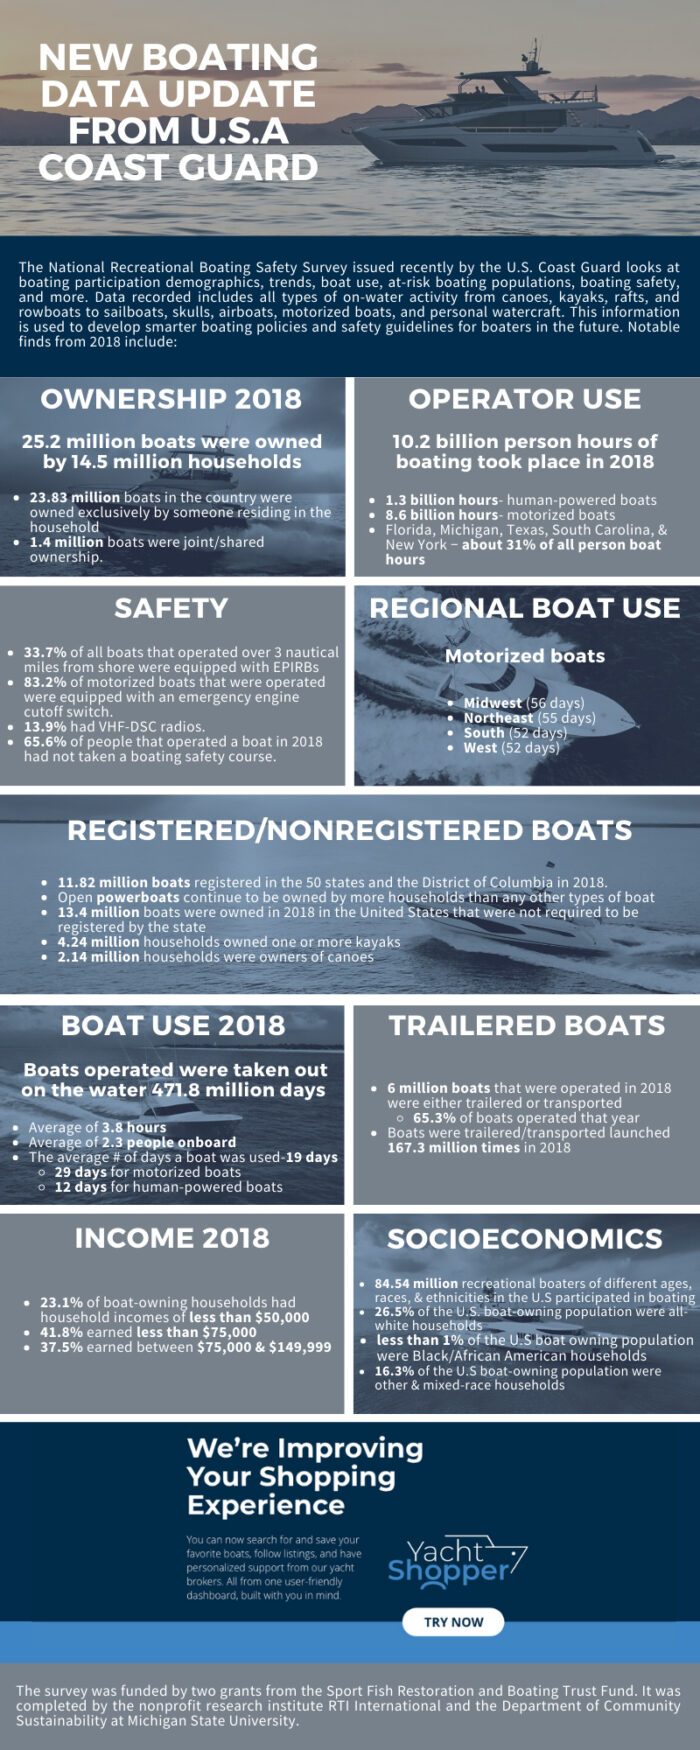 Coast Guard survey offers new boating data